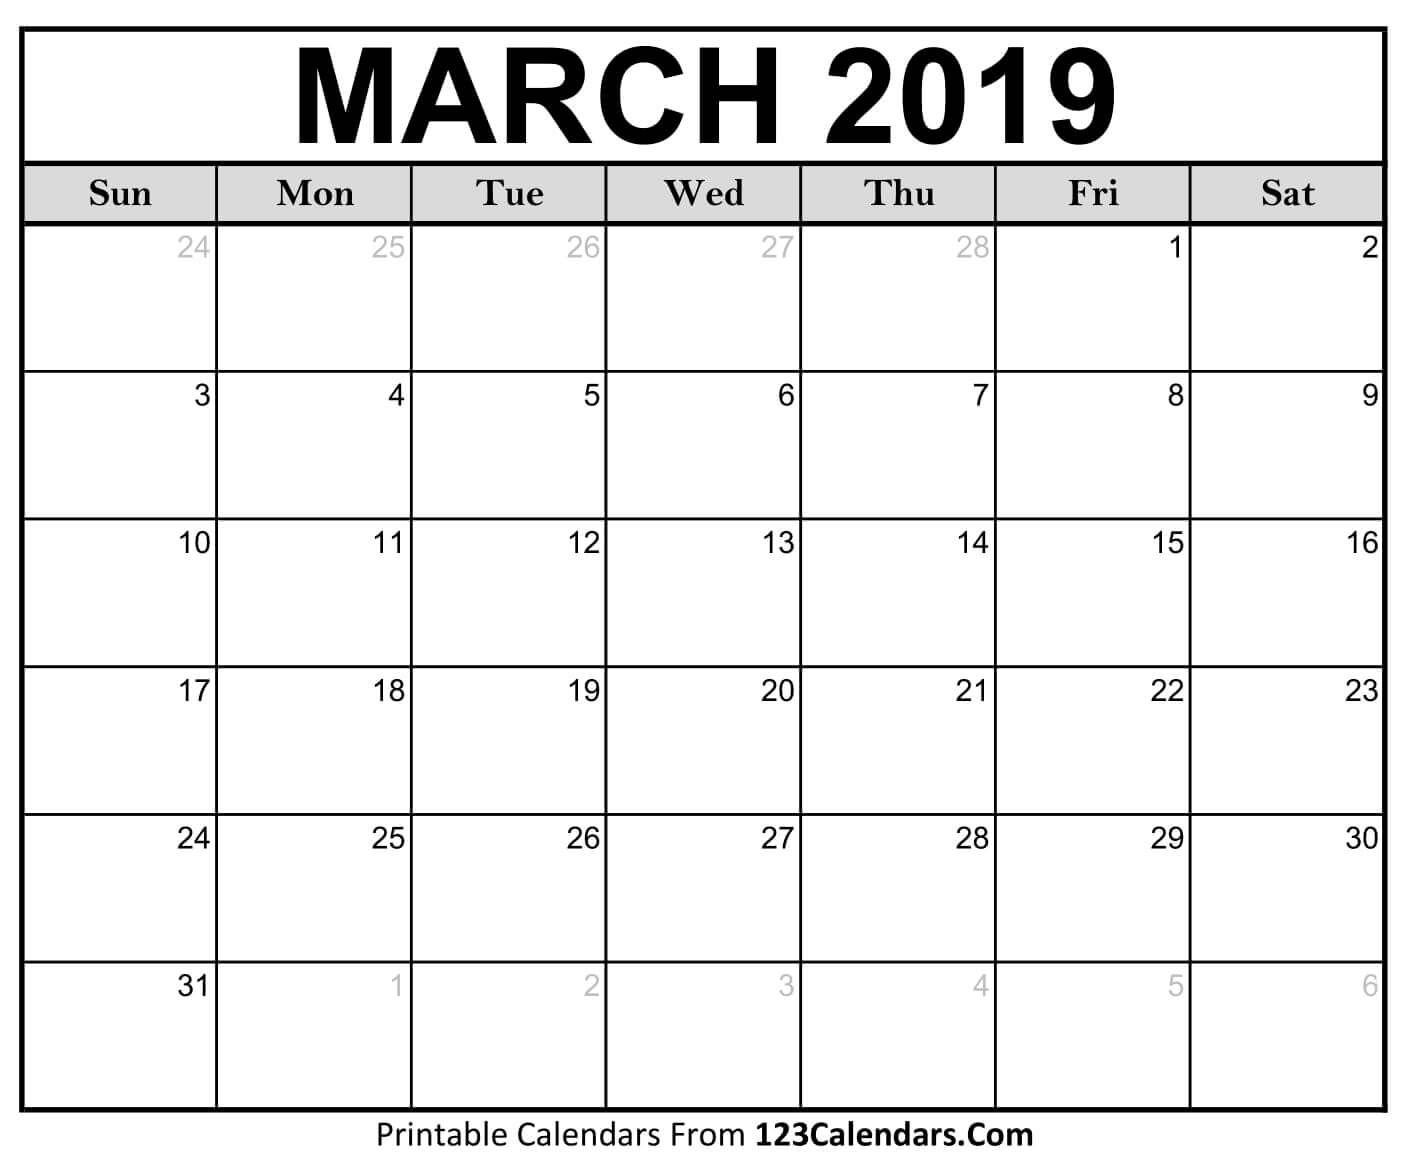 March 2020 Printable Calendar Calendar Printables Printable